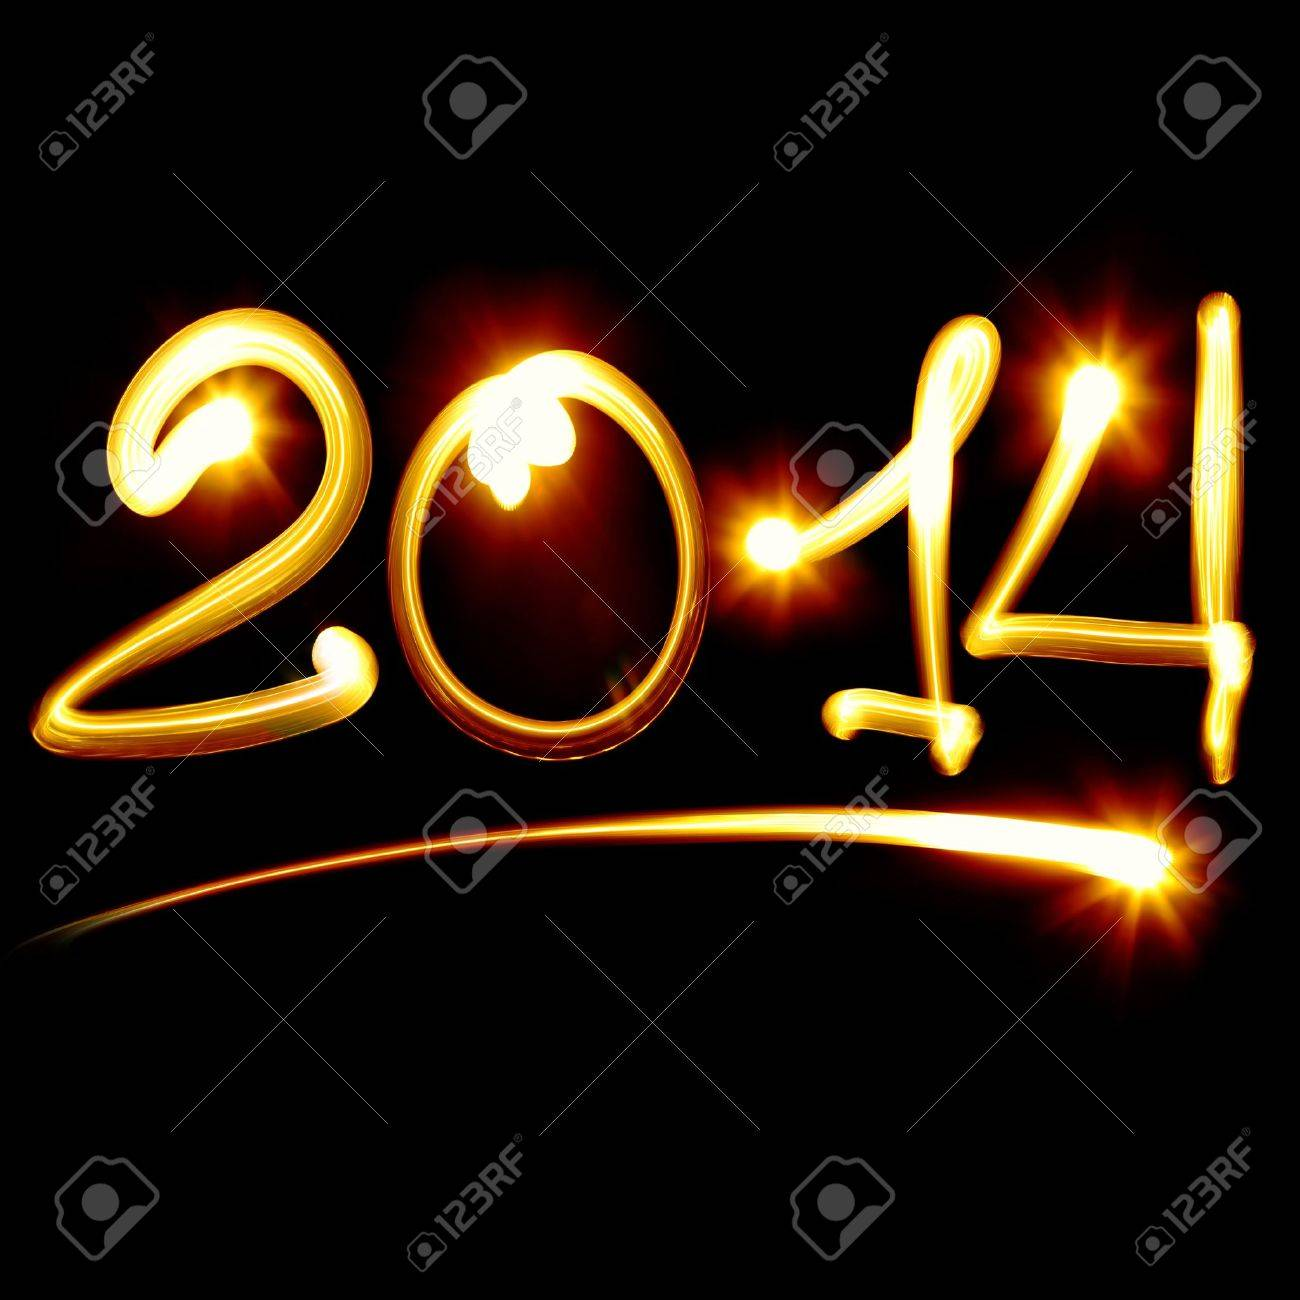 Happy new year 2014 message over black background Stock Photo - 15732588